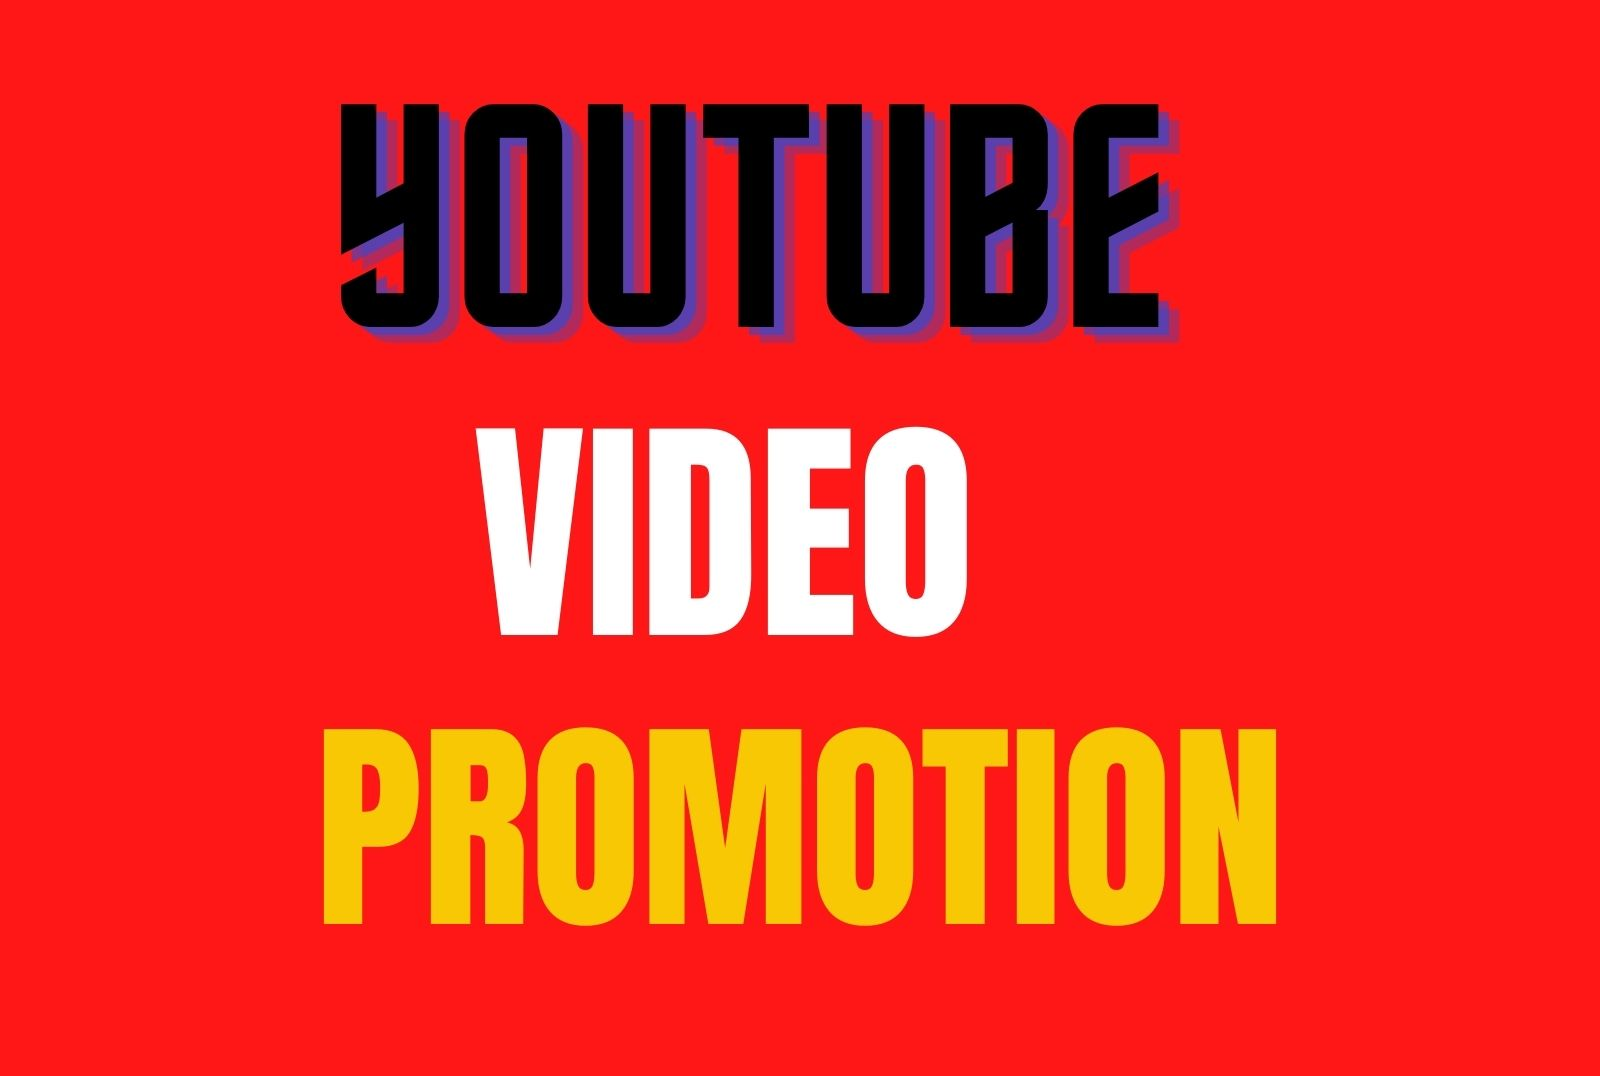 Organically promote your YouTube video and make it rank on page 1